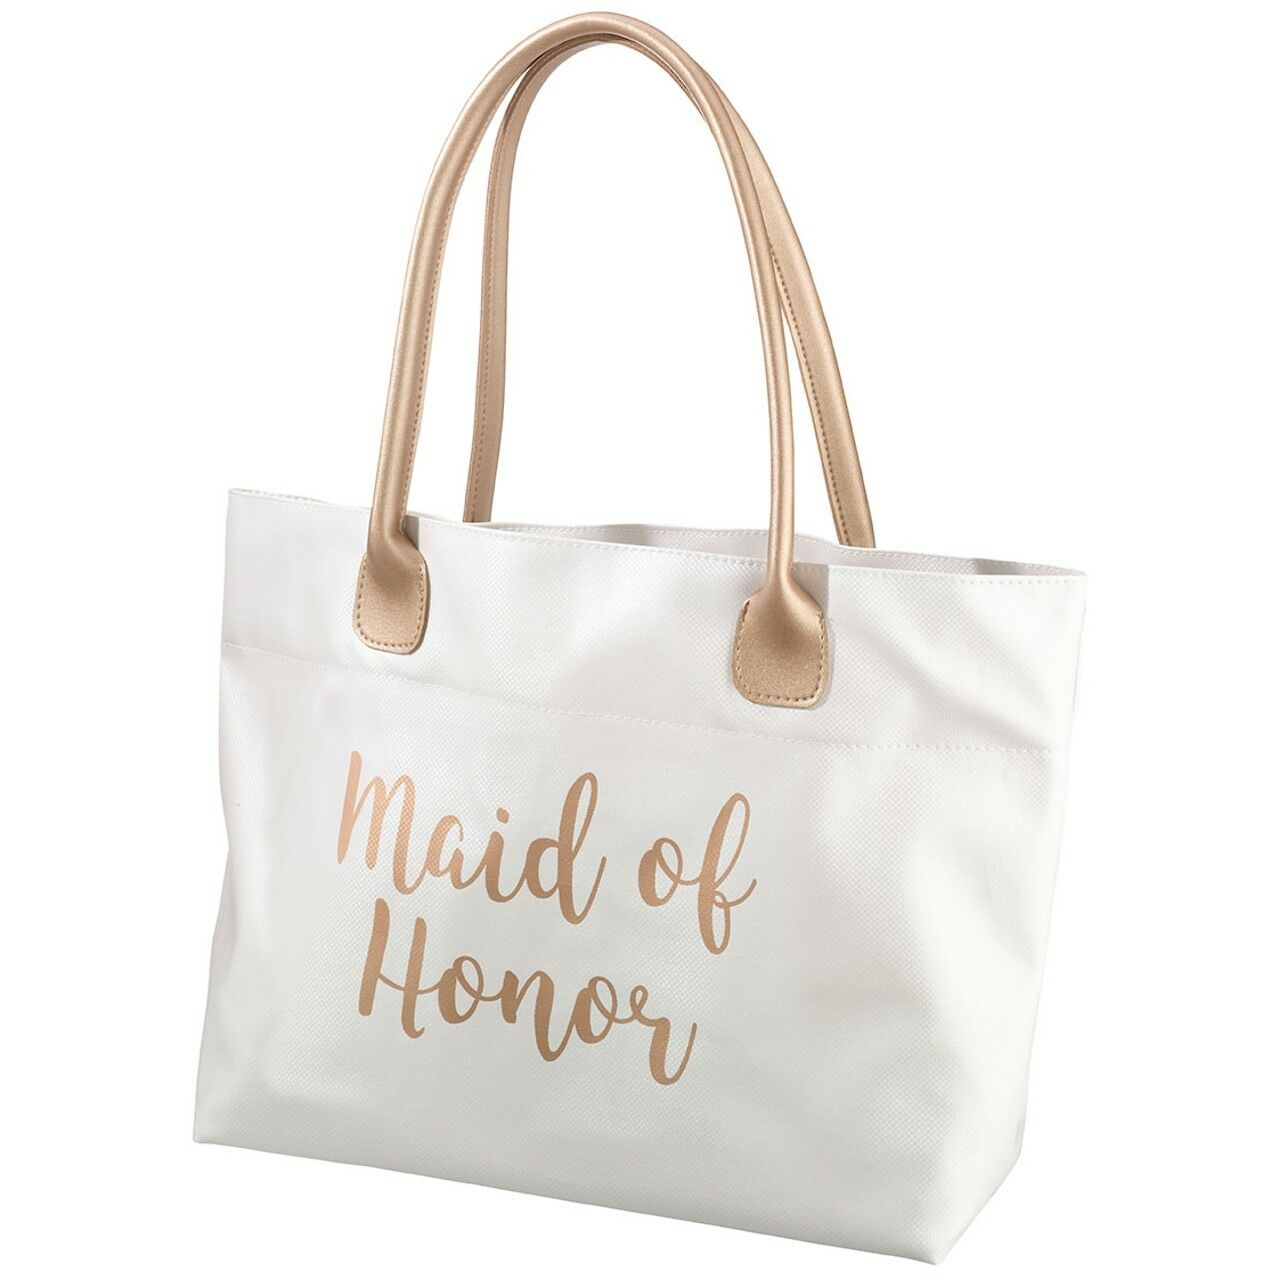 Bride Tote Bag Bridal Party Gifts for Wedding Day Handbags Gold Accessories